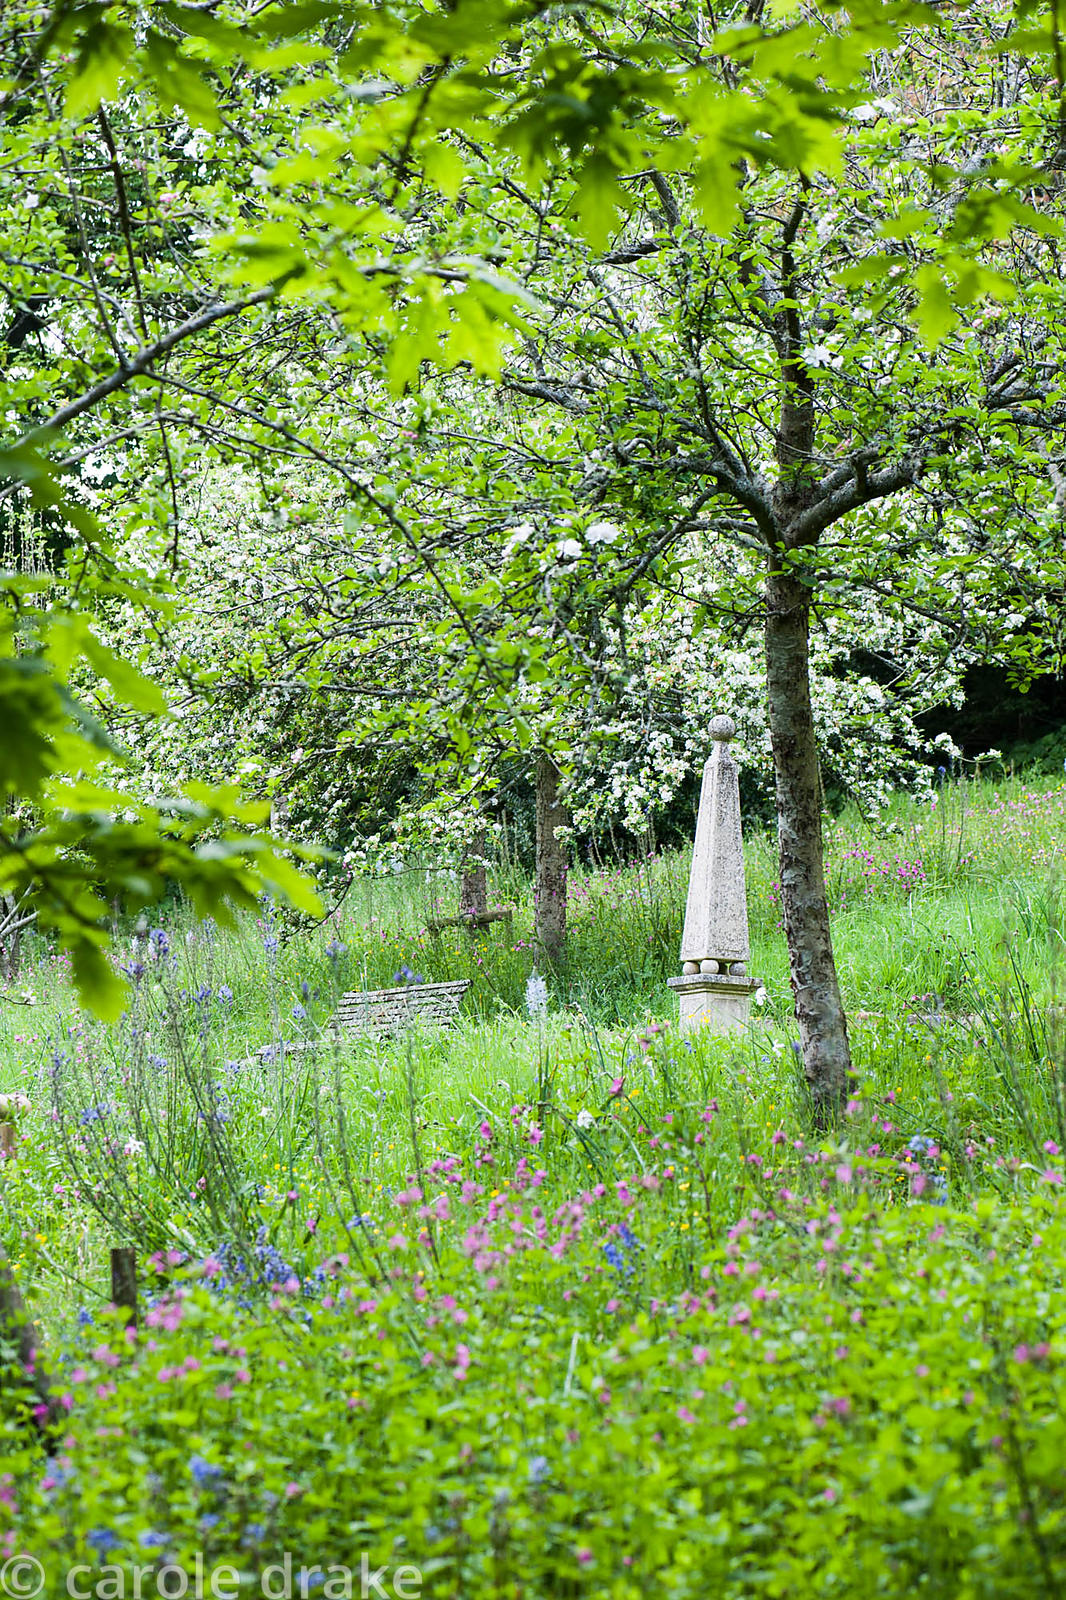 Obelisk on the path that runs through the flower filled slopes of the new orchard at The Old Rectory, Netherbury, Dorset in May